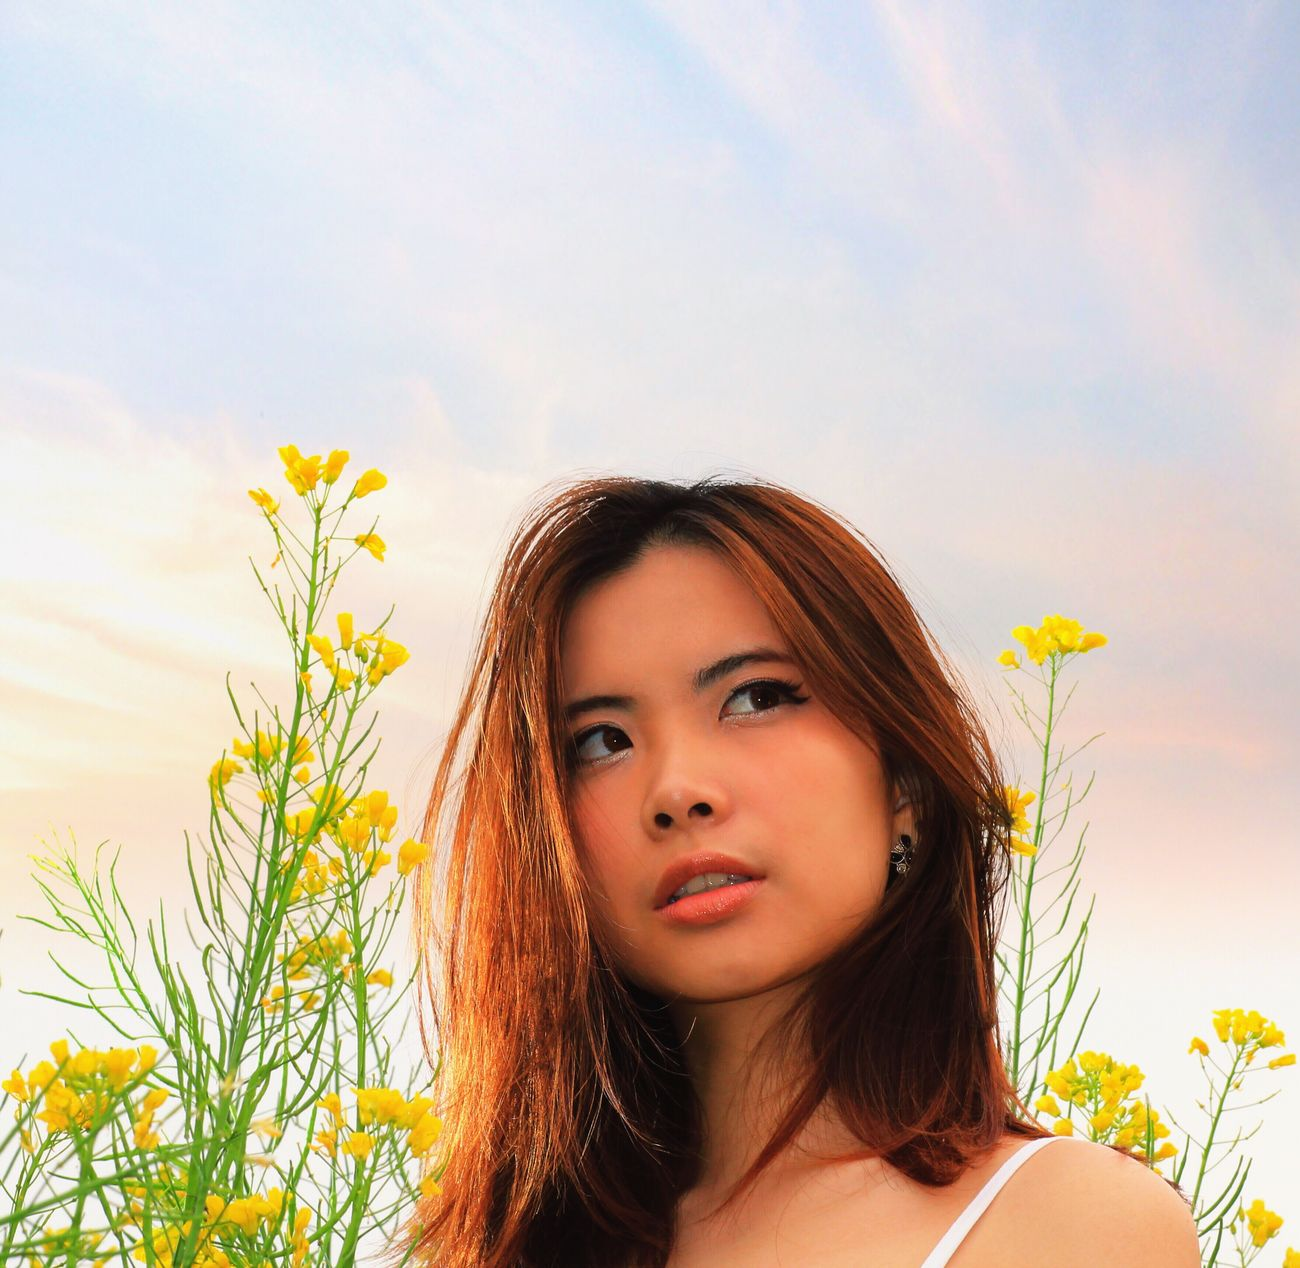 Aspiring - young aspiring Asian model VivianLee Aspiring Model Beauty In Nature Happy Pose Modeling Portrait Photography Portrait Of A Woman Outdoor Photography Taking Photos Beauty Flowers Portrait And Nature Beautiful